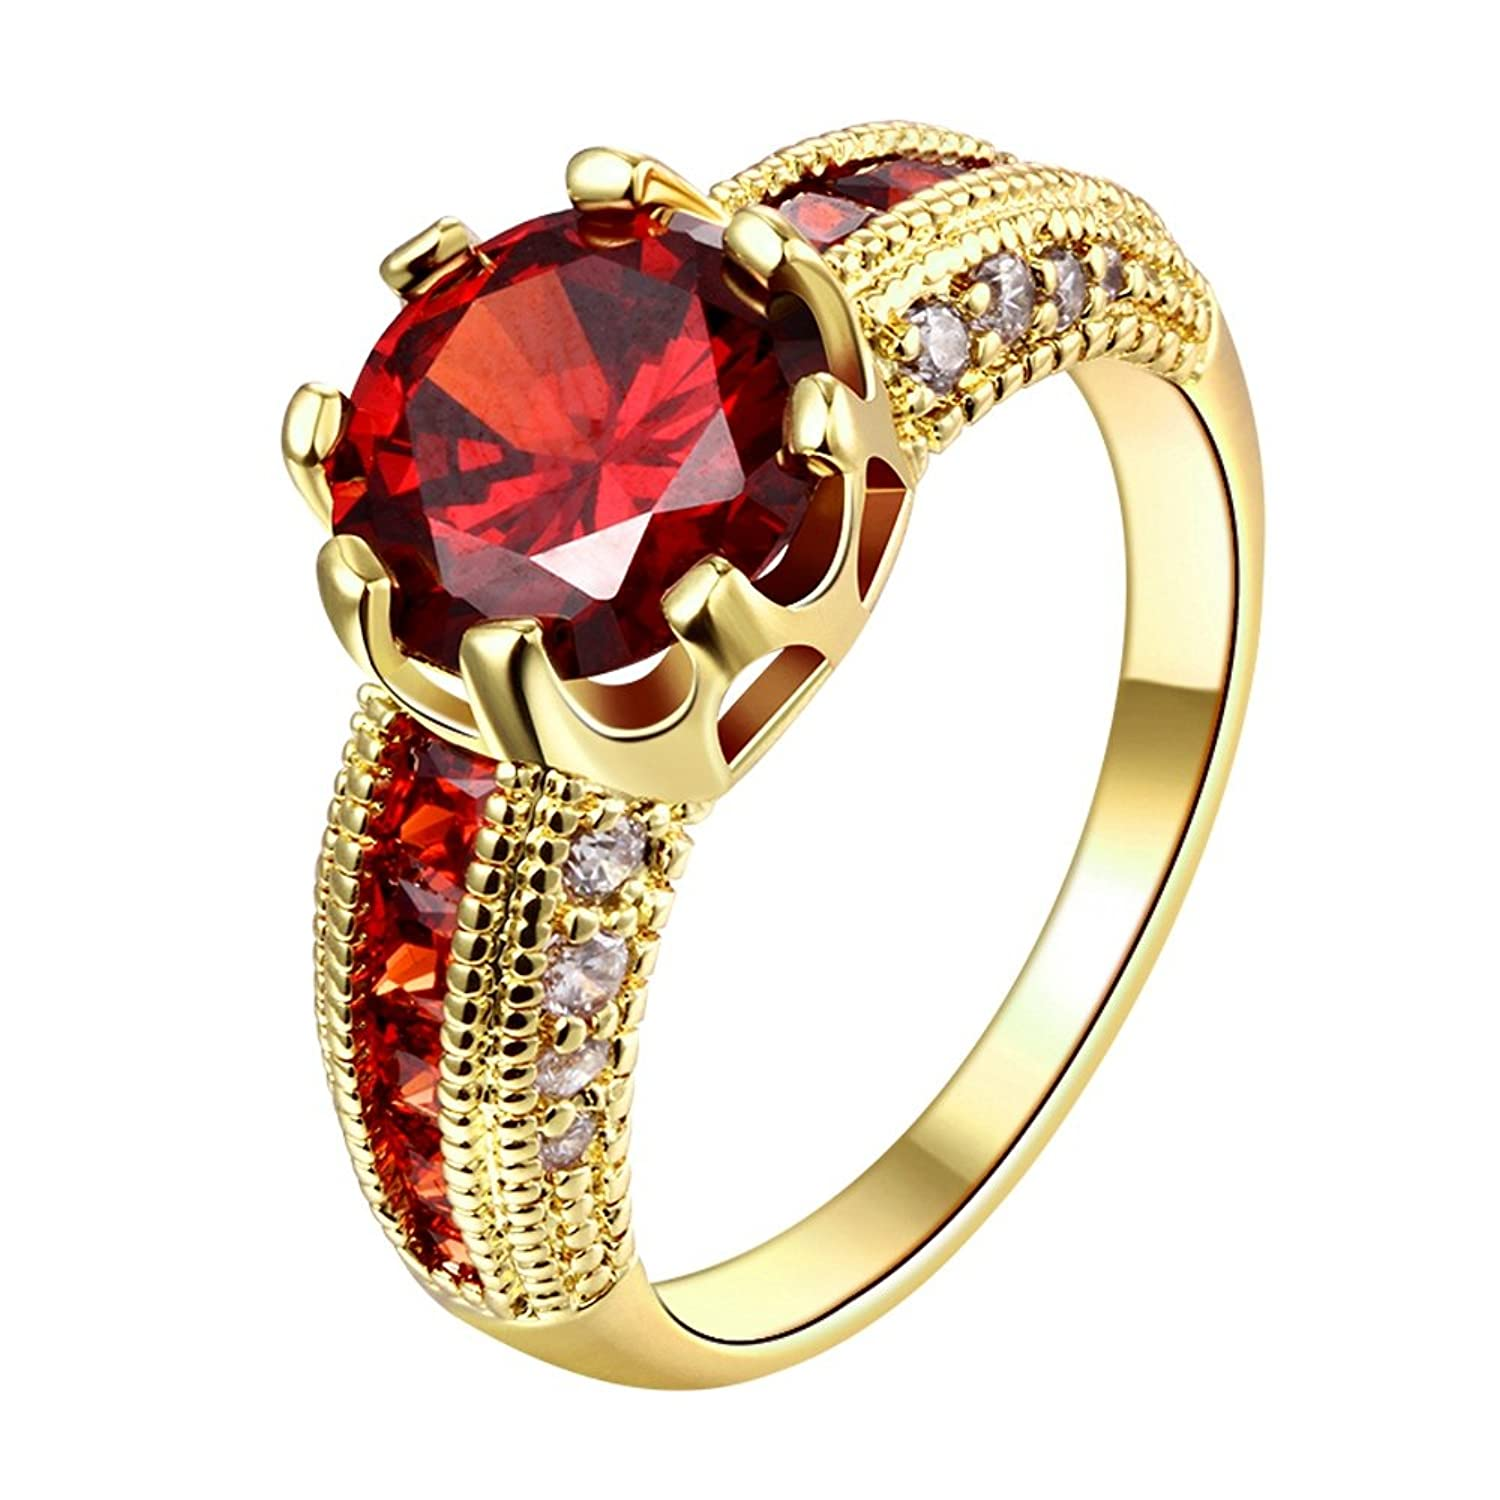 size s pin and for ring jewellery rings gold citrine orange women